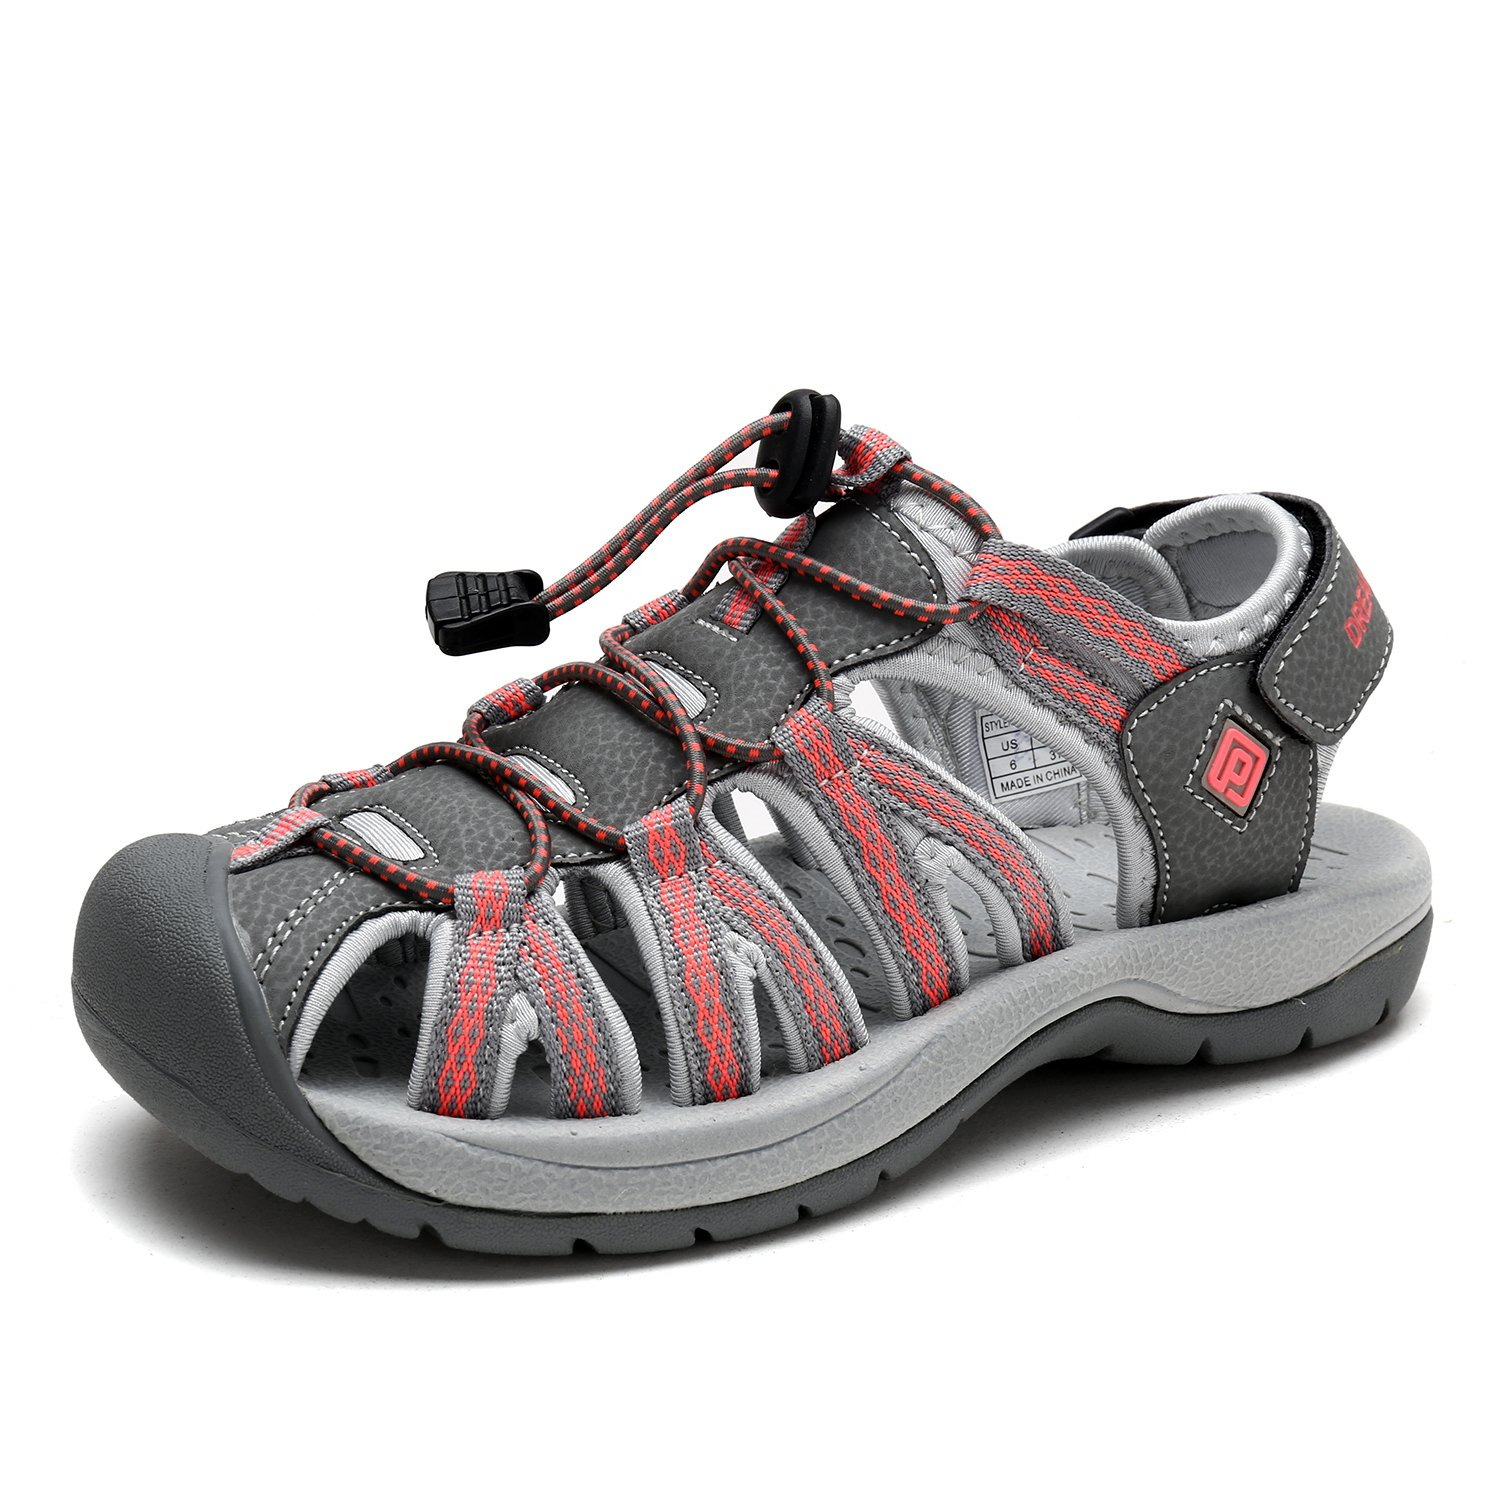 DREAM PAIRS Women's 160912-W Adventurous Summer Outdoor Sandals B077GDGGPN 9 M US|New Grey Coral